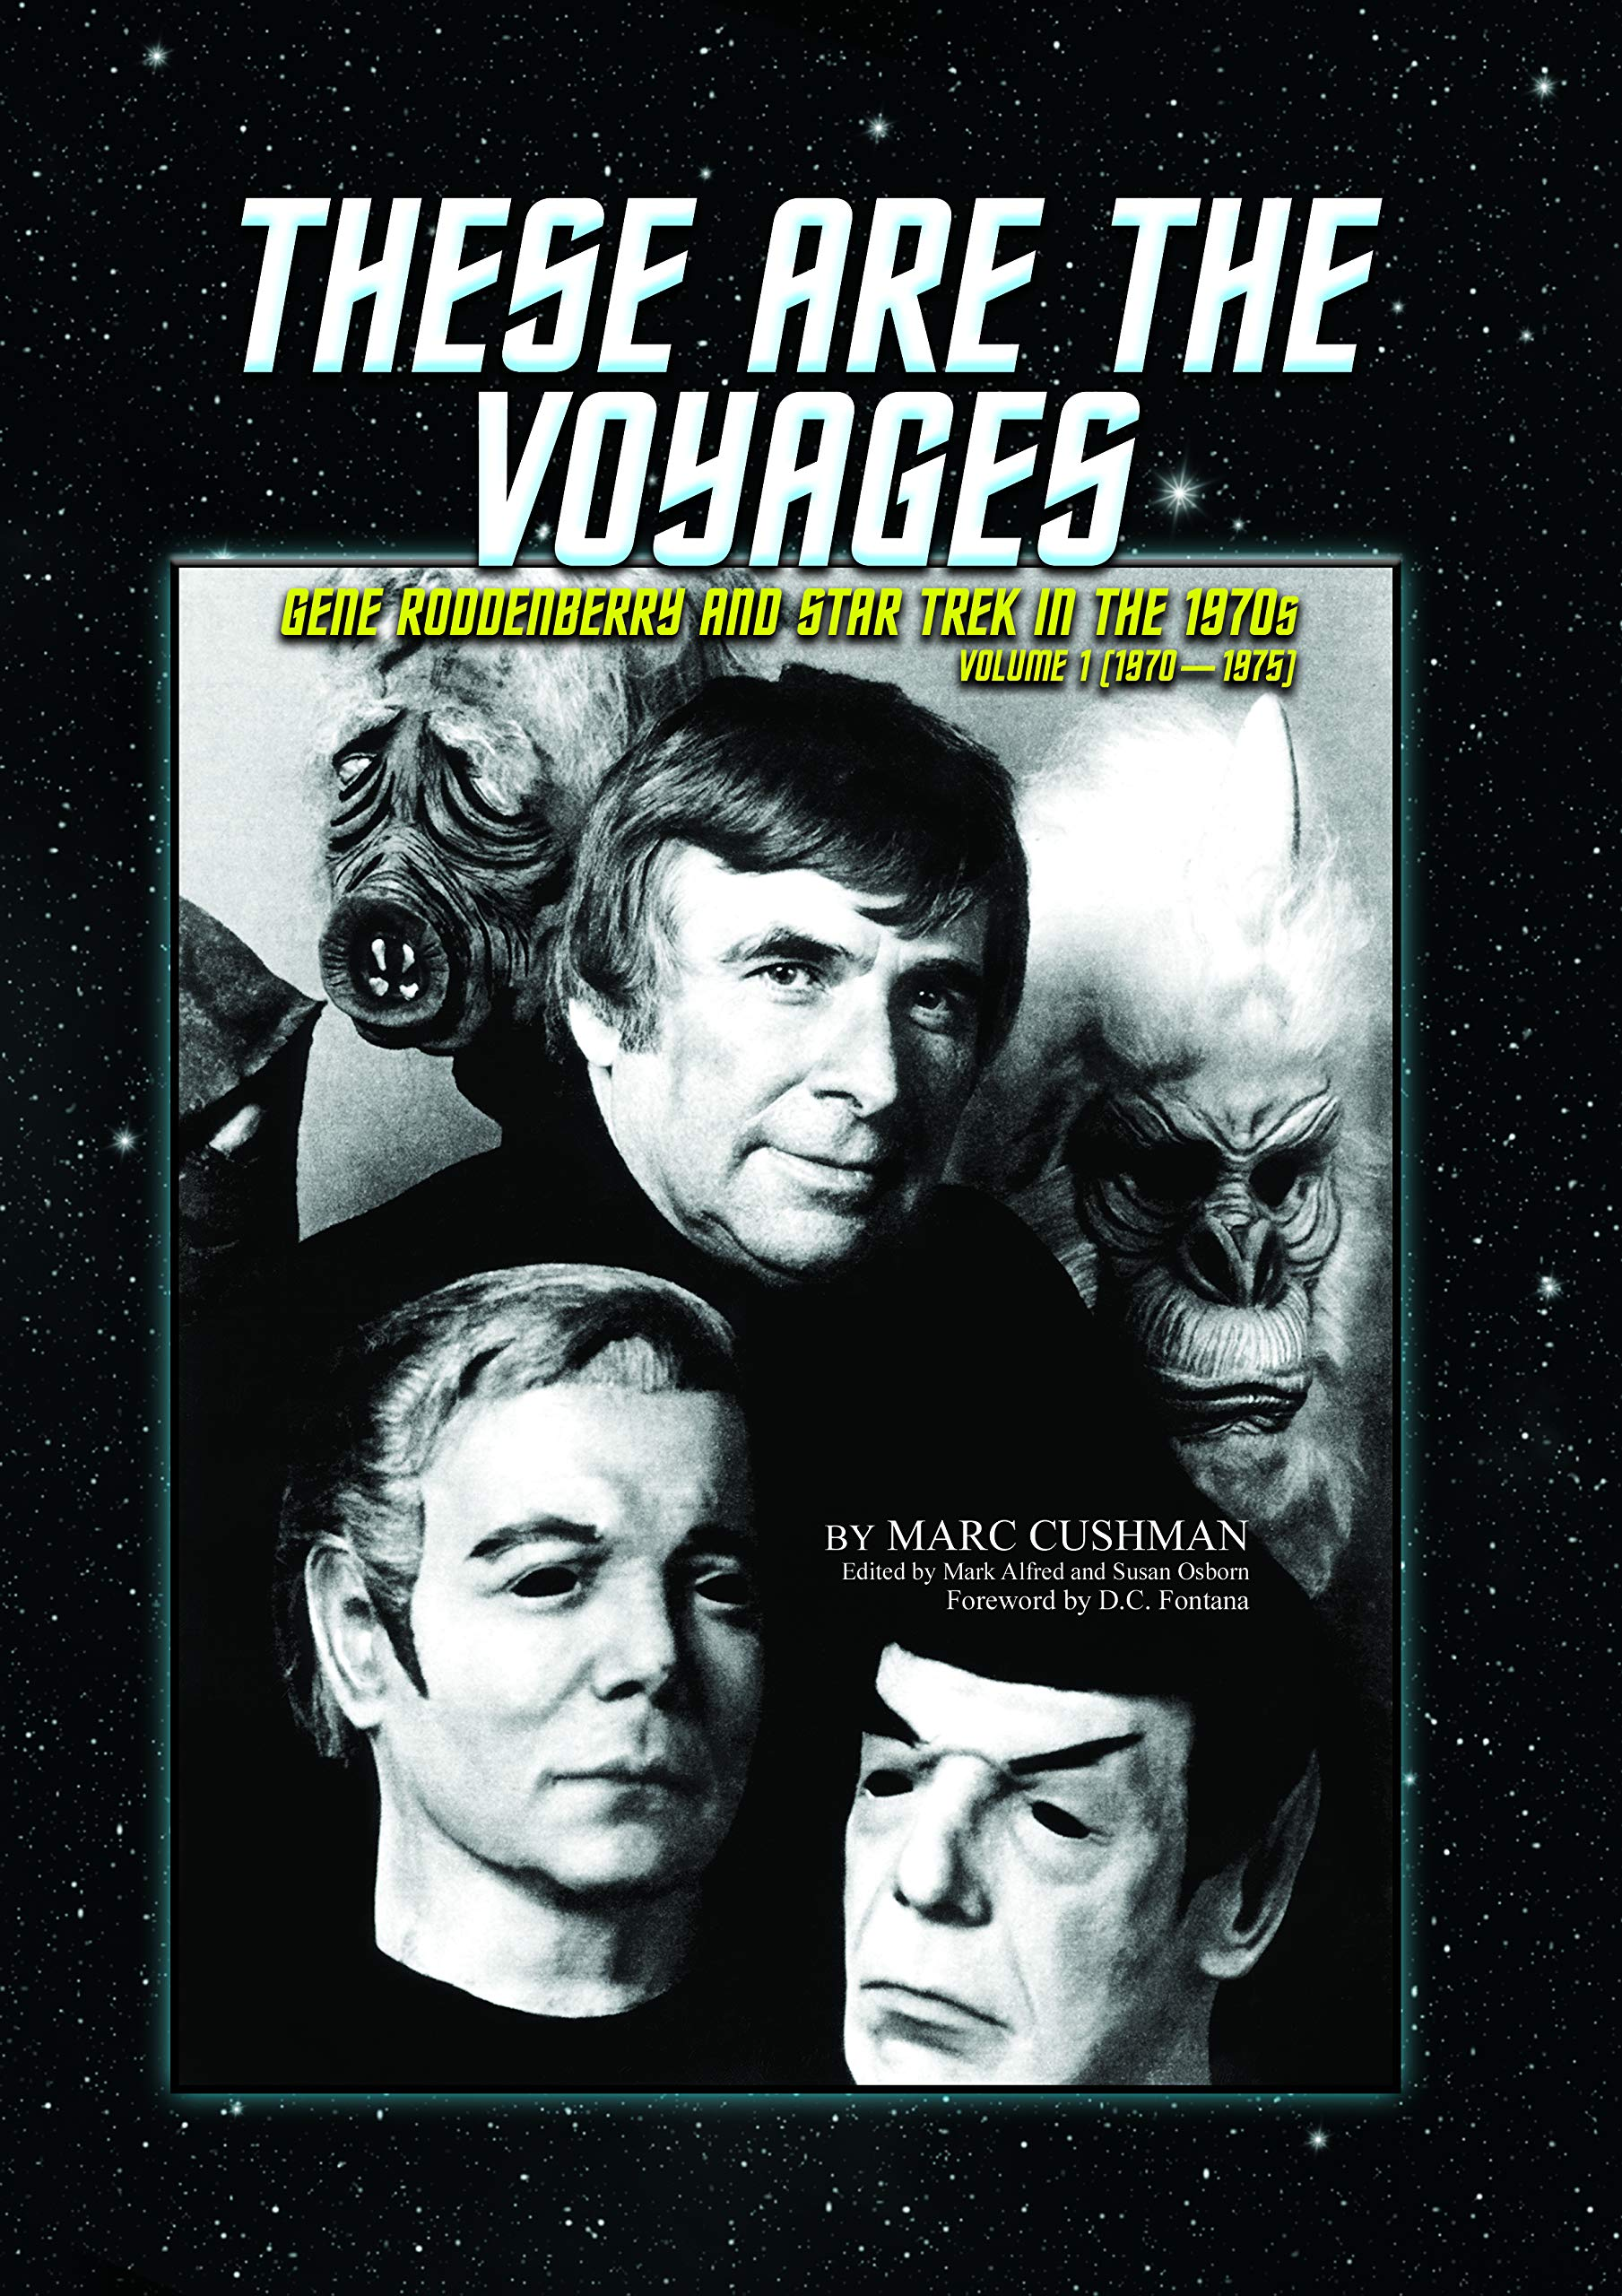 These Are the Voyages: Gene Roddenberry and Star Trek in the 1970s (1970-75)